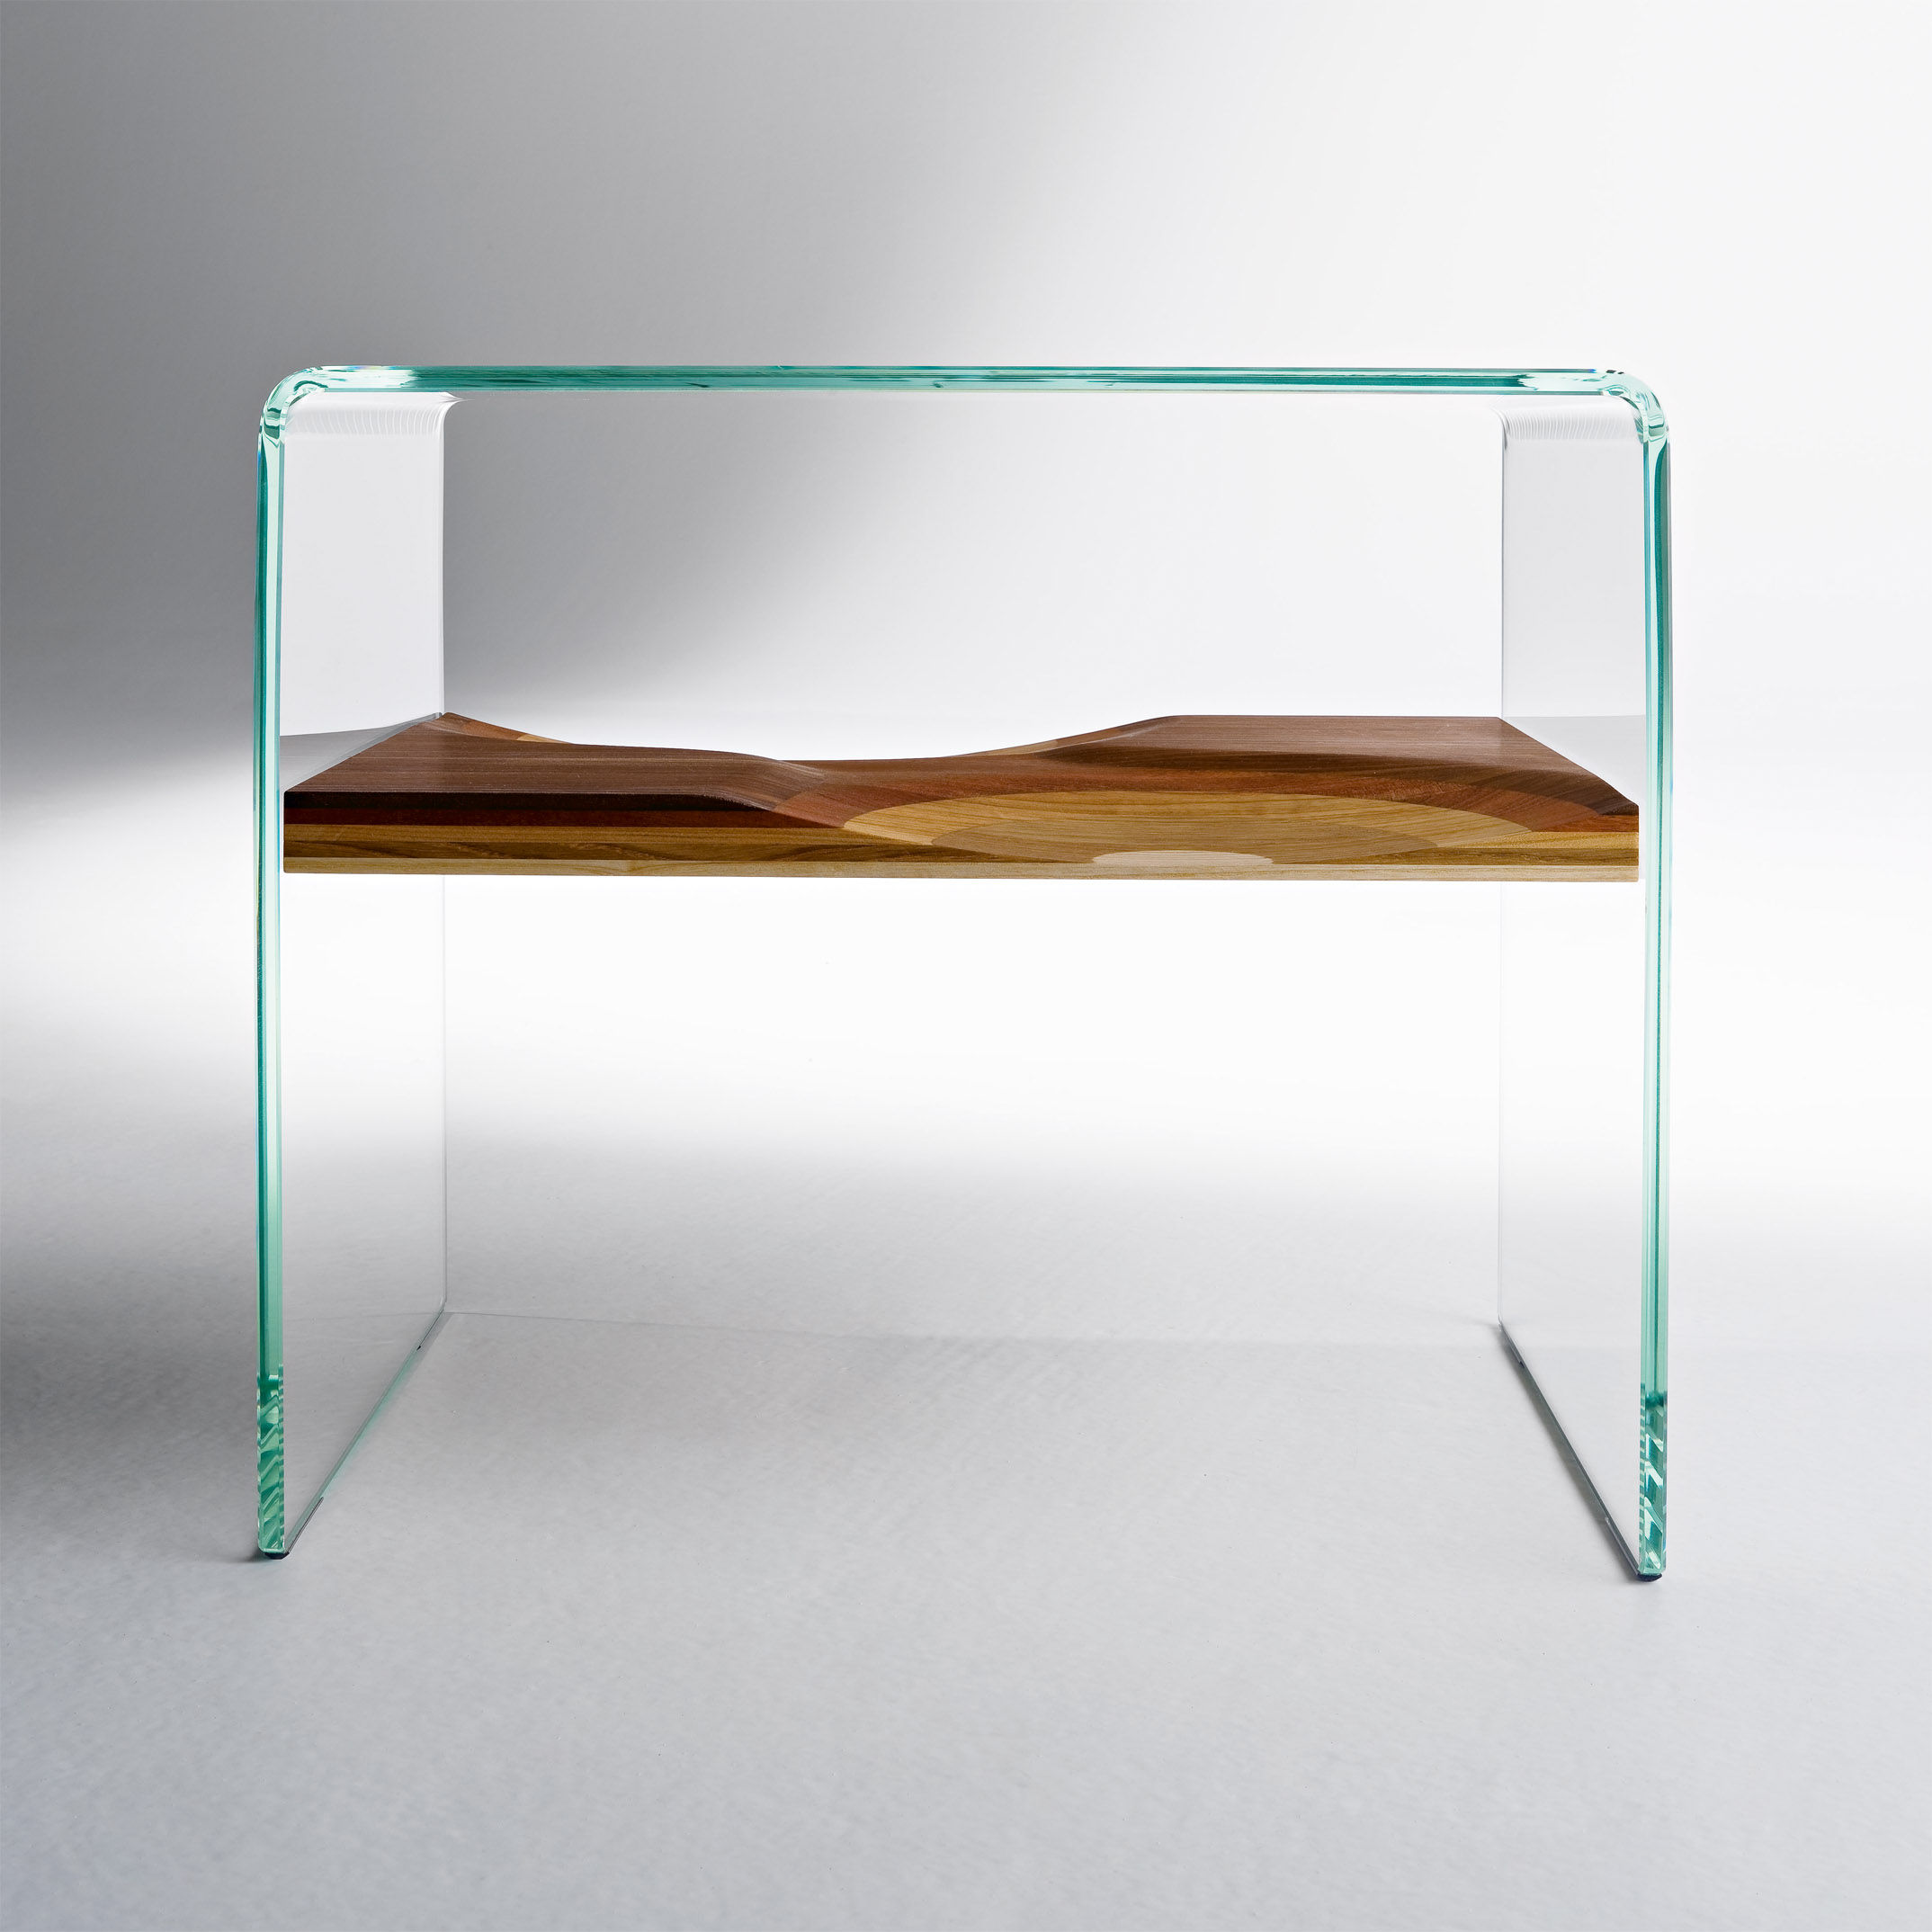 Table de chevet bifronte transparent horm - Table de chevet verre ...